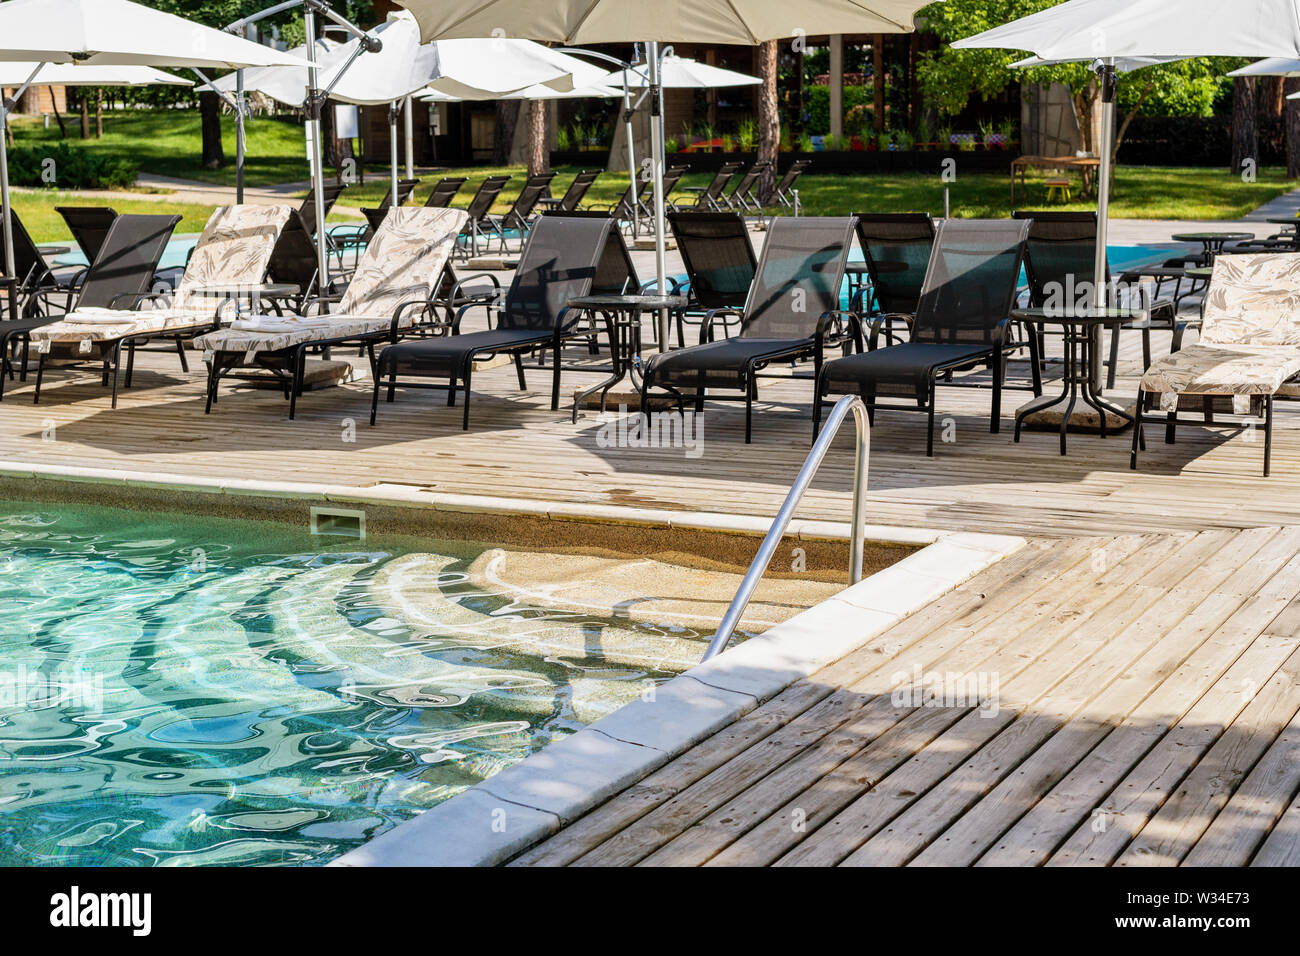 Poolside with clear blue water and loungers under umbrellas ...